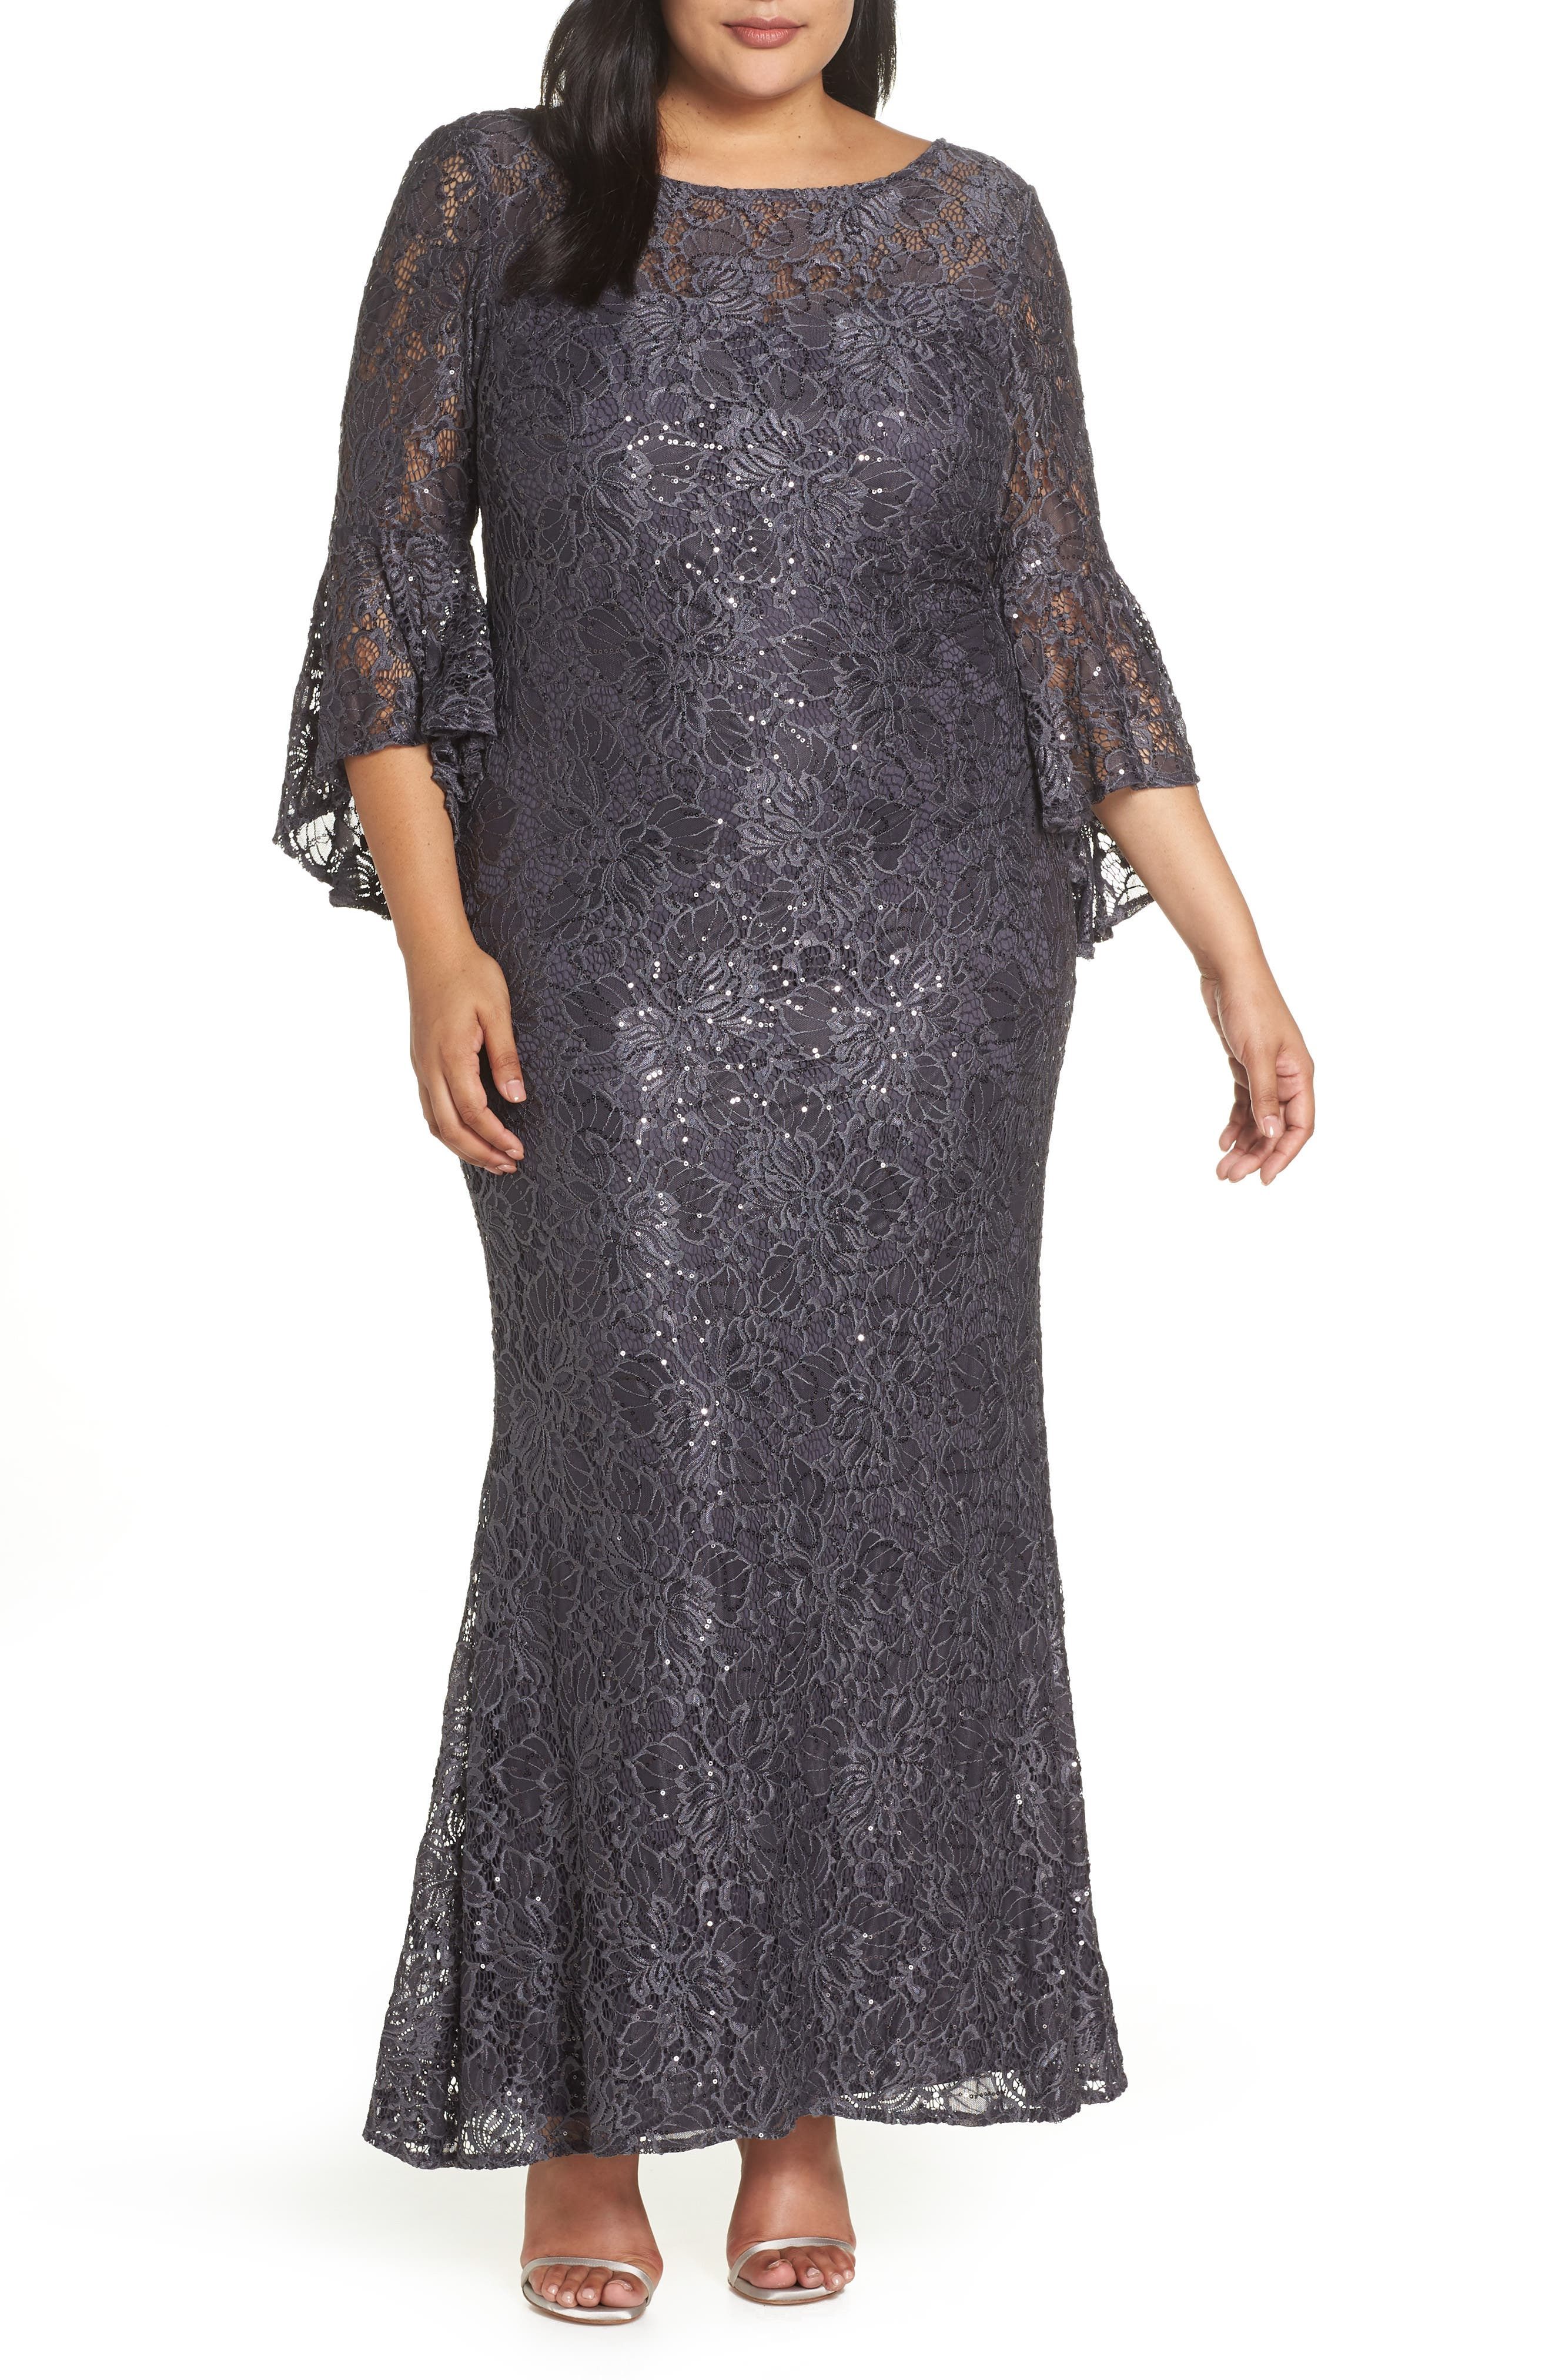 MORGAN & CO., Lace Bell Sleeve Gown, Main thumbnail 1, color, CHARCOAL